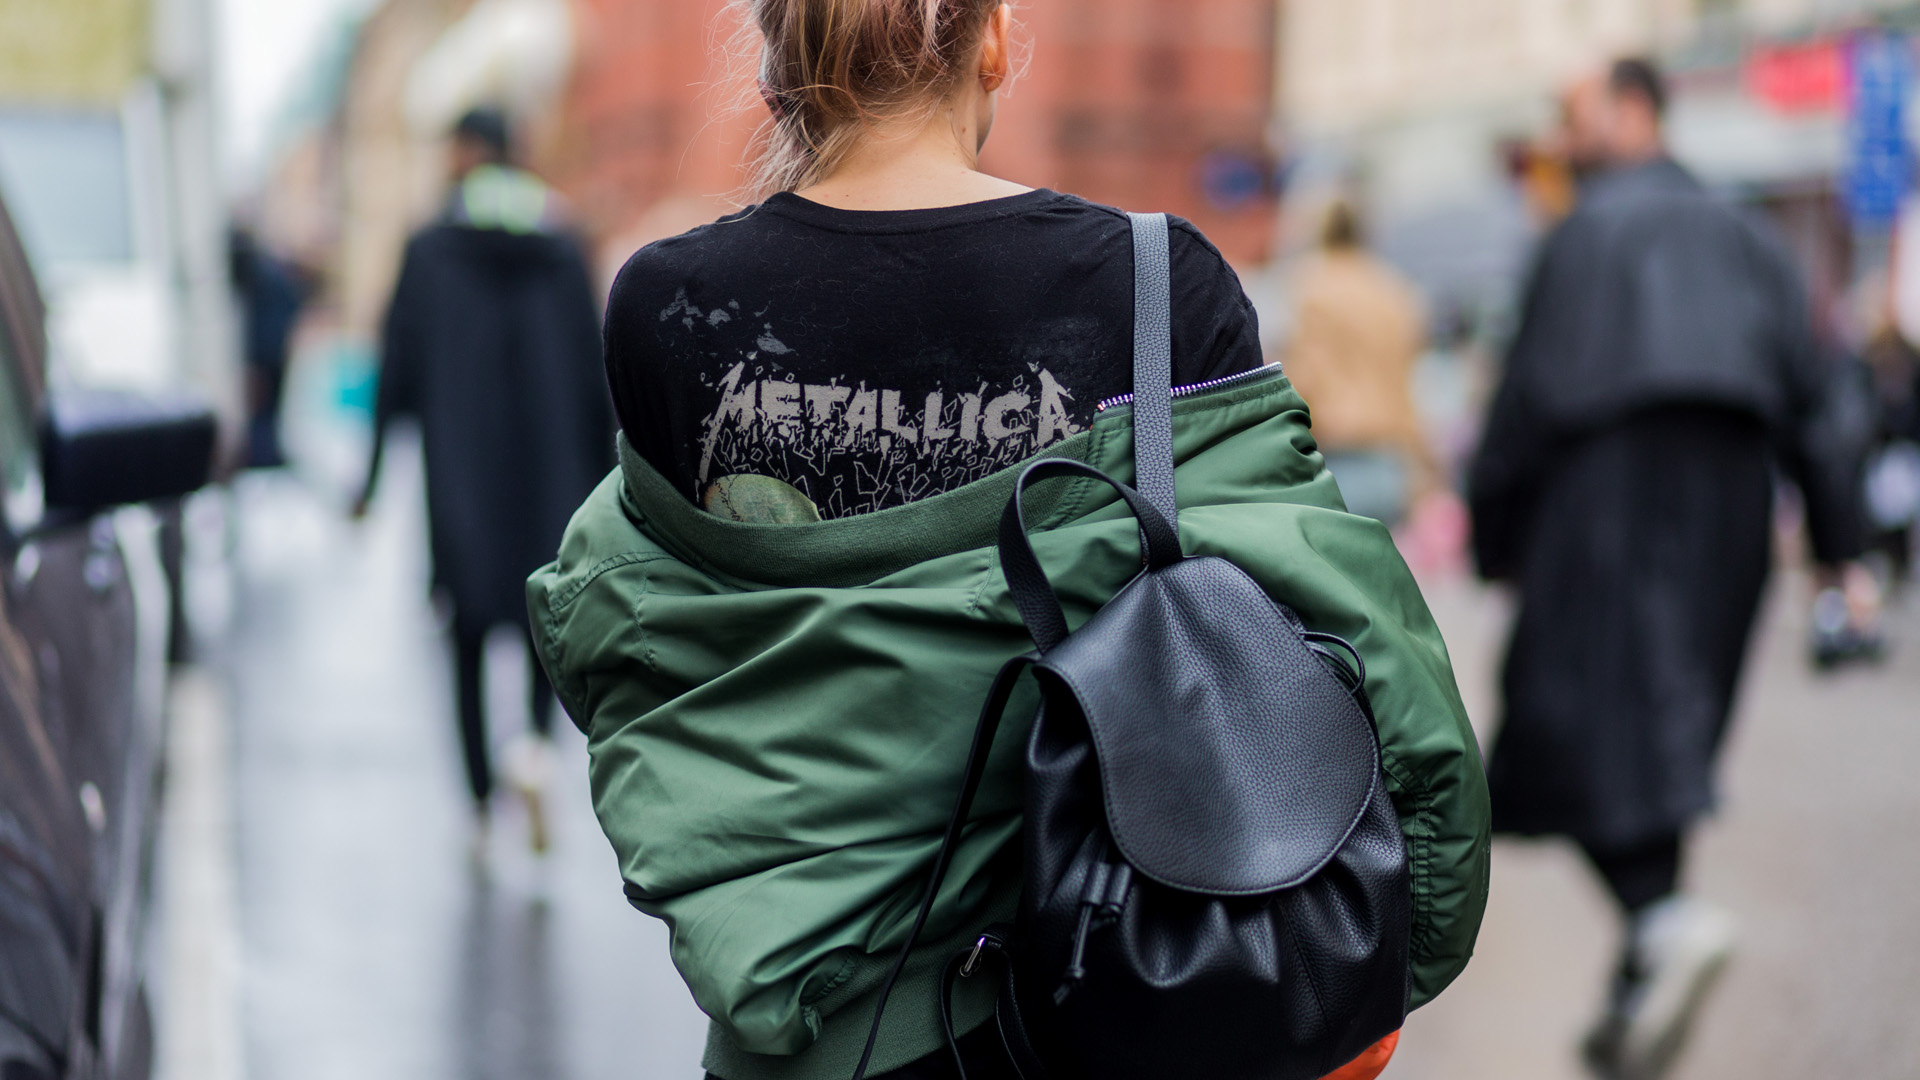 STOCKHOLM, SWEDEN - AUGUST 29: A guest wearing a black Metallica tshirt, olive bomber jacket and black backpack while having